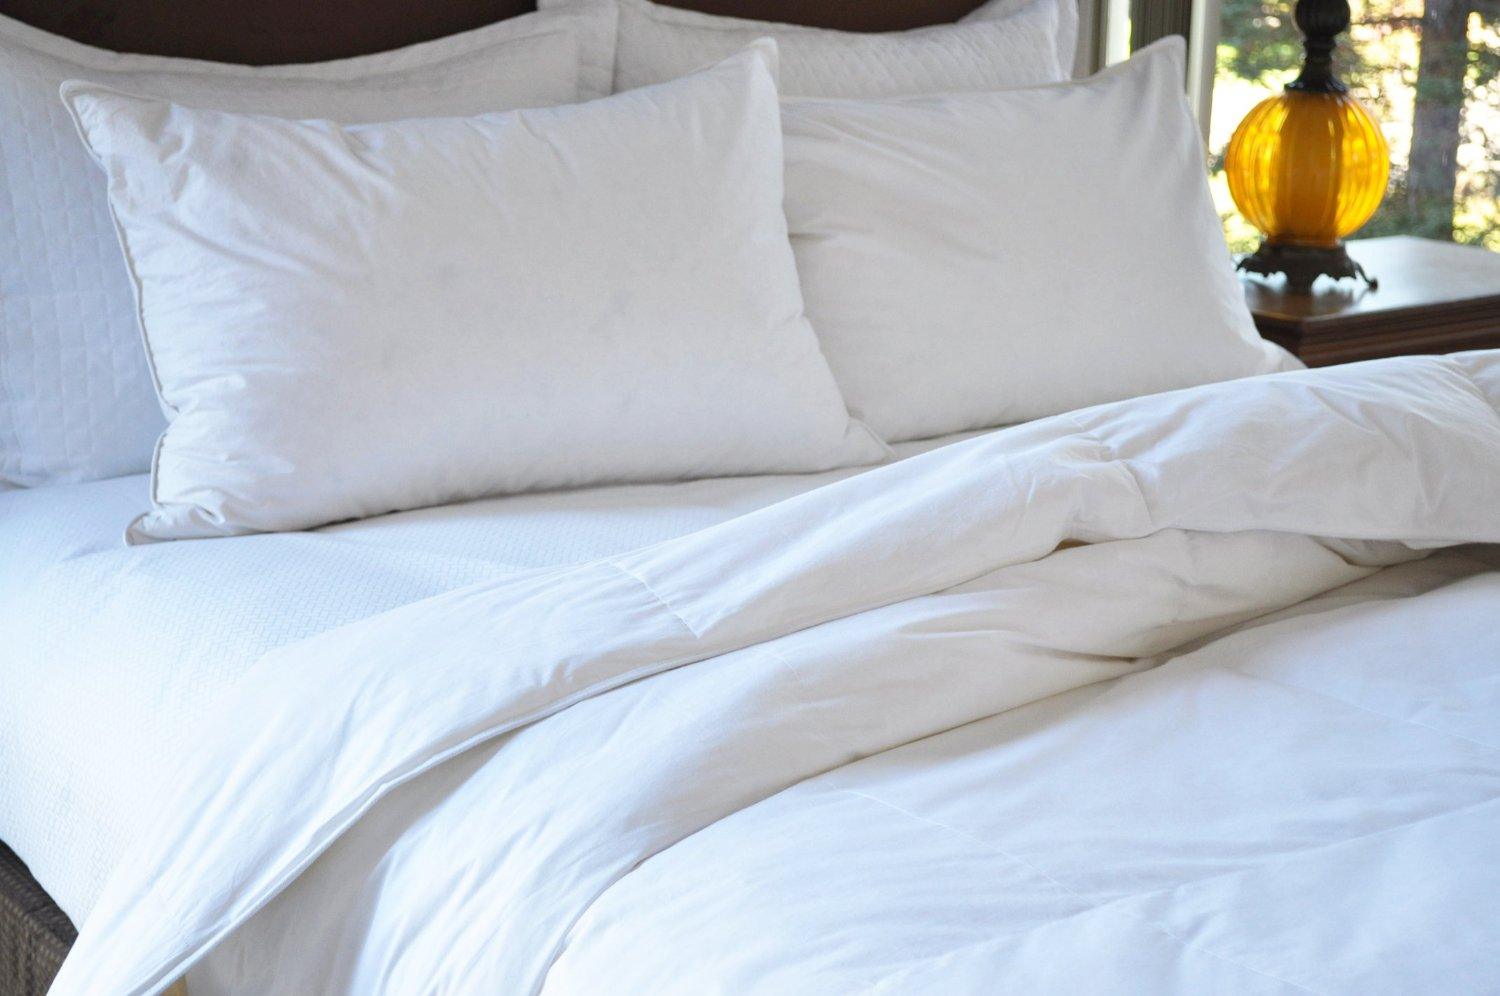 natural comfort classic white goose down comforter cal king. top cal king down comforters around  best goose down comforter